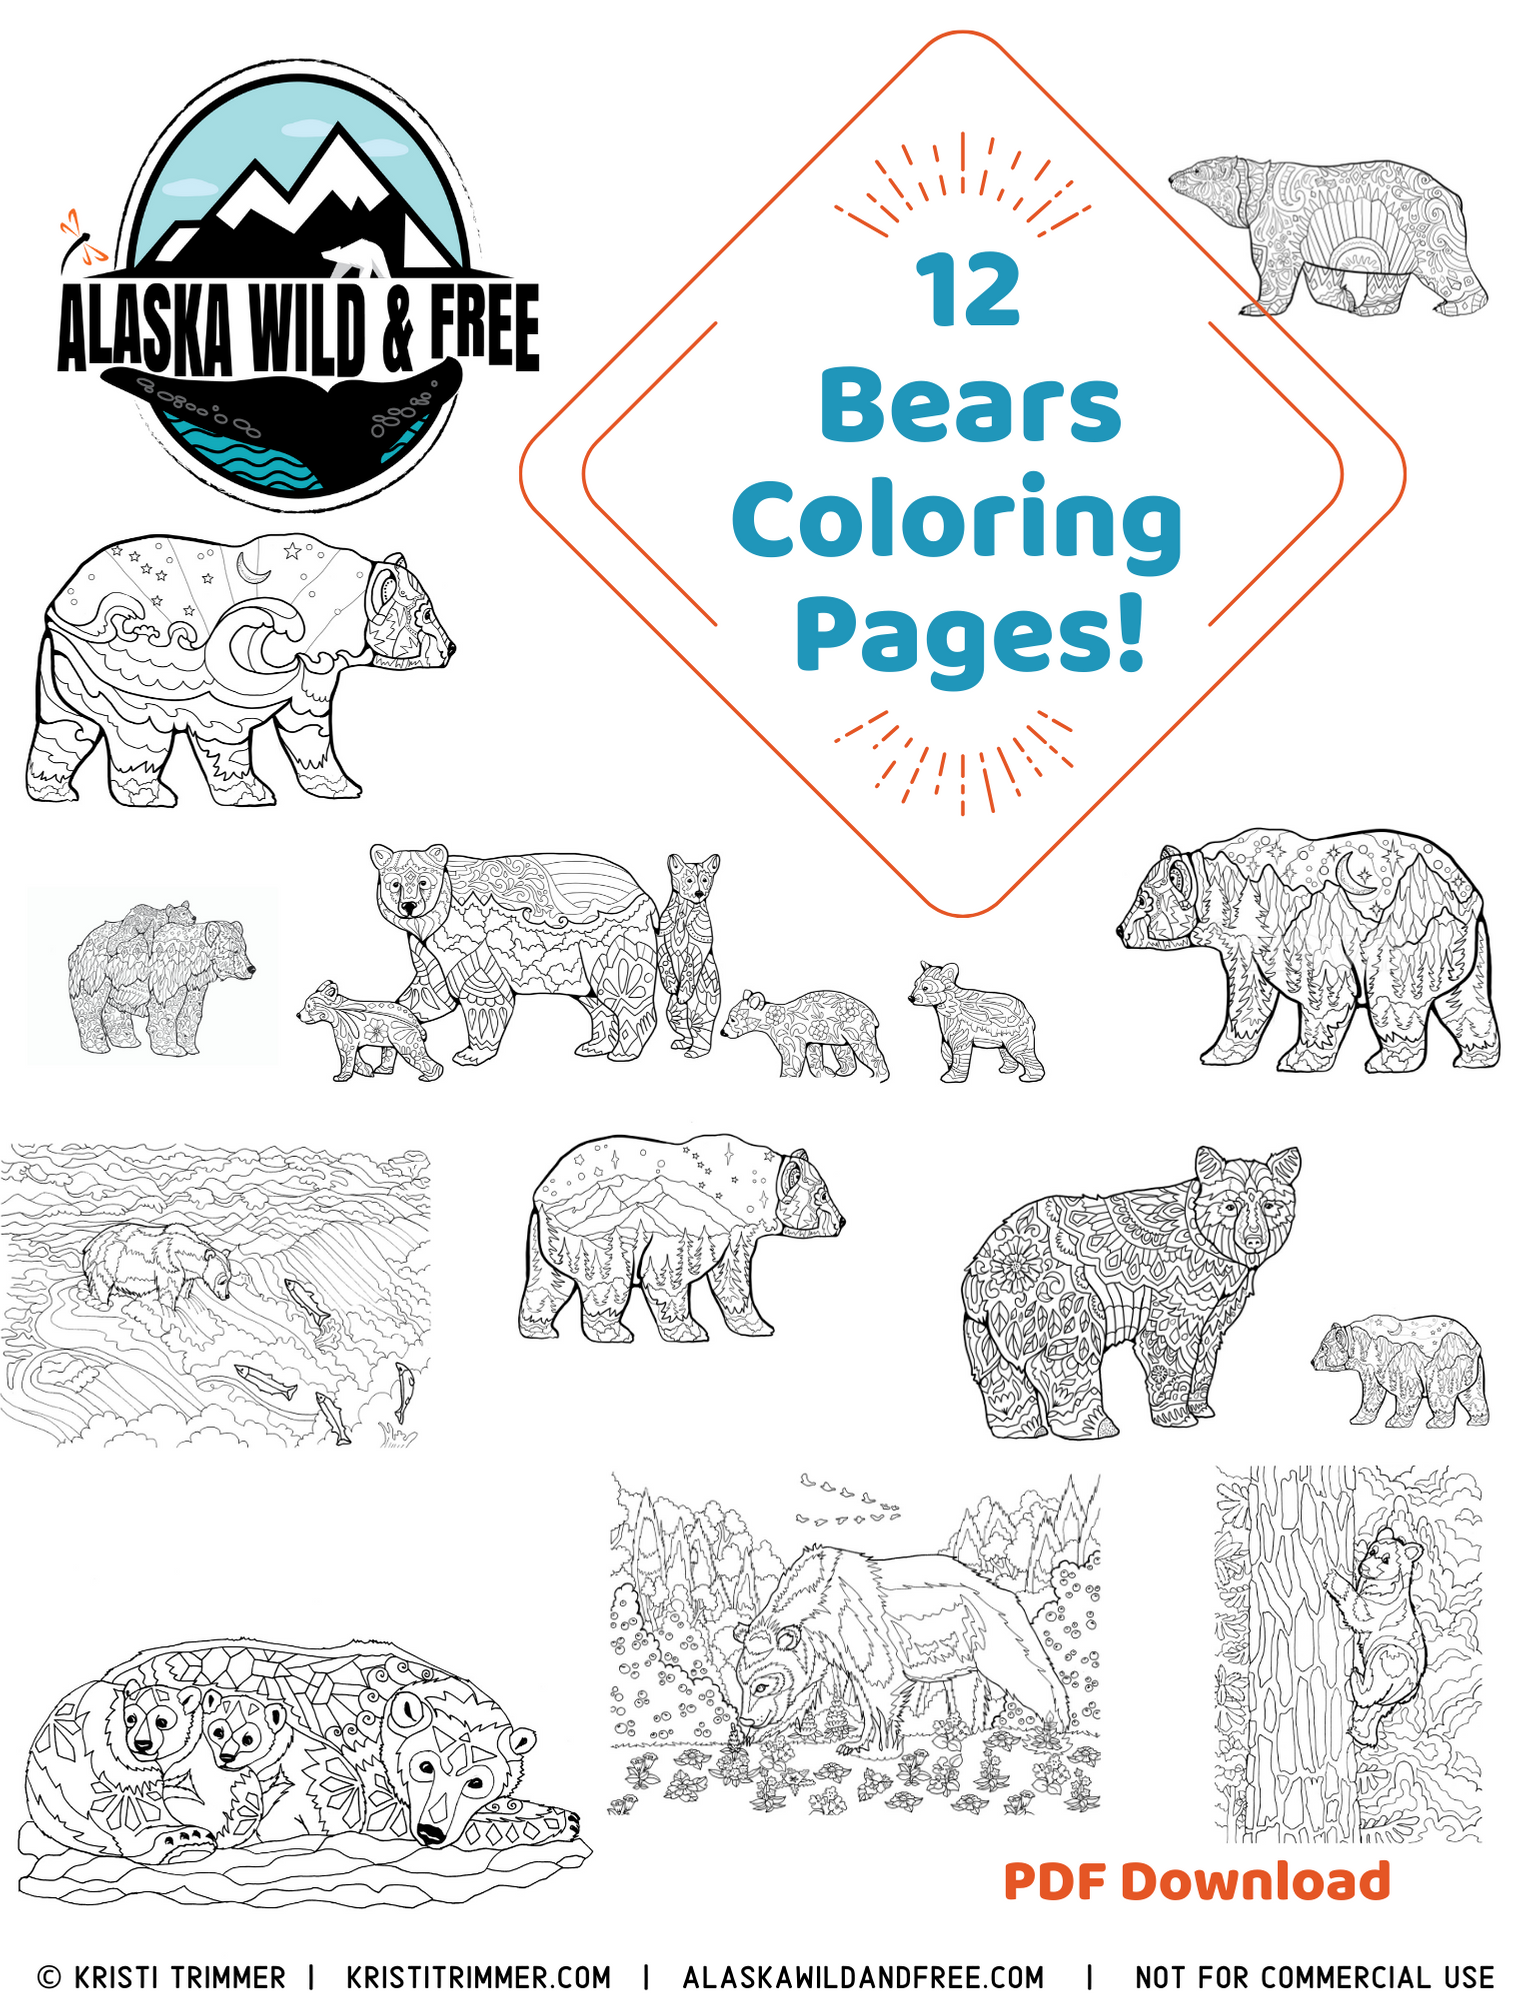 alaska Coloring Pages | Alaska Coloring Page by Doodle Art Alley ... | 1999x1532